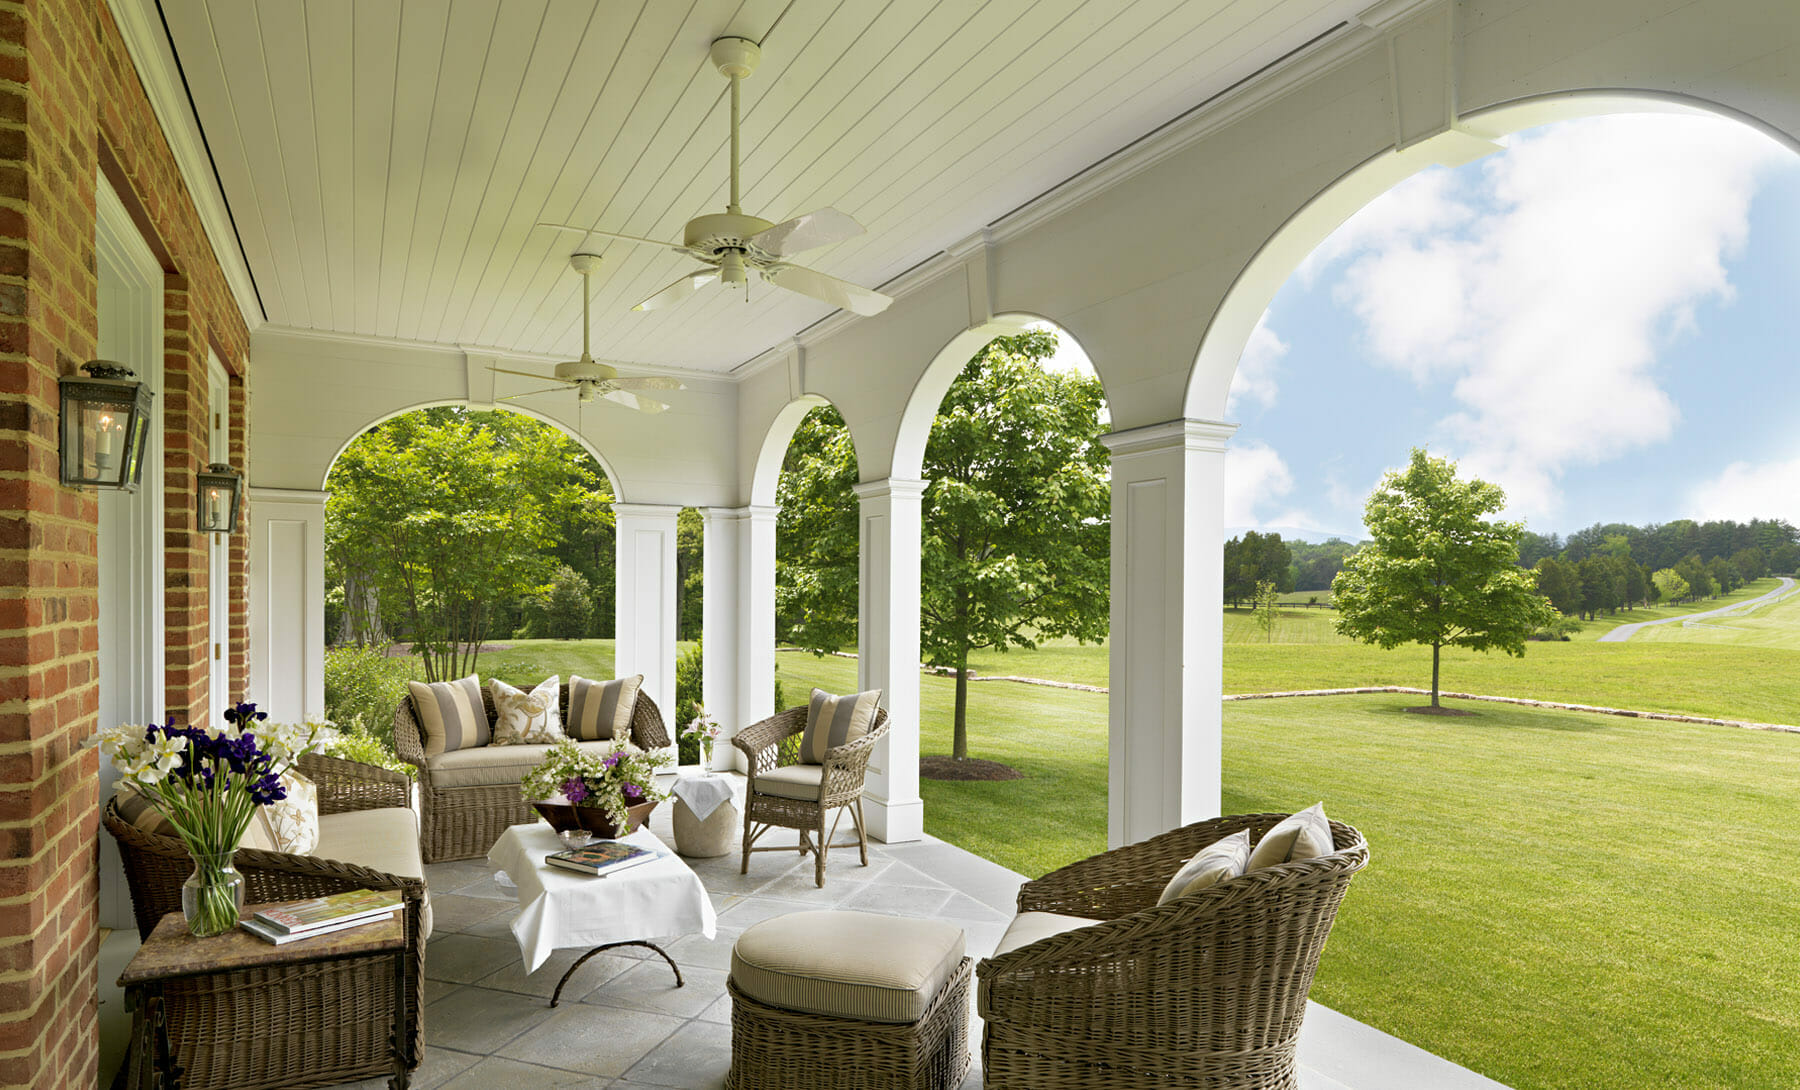 Covered veranda with outdoor fans and wicker chairs on an estate in Albemarle County, just outside of Charlottesville, Virginia. The veranda was built by GME Builders.